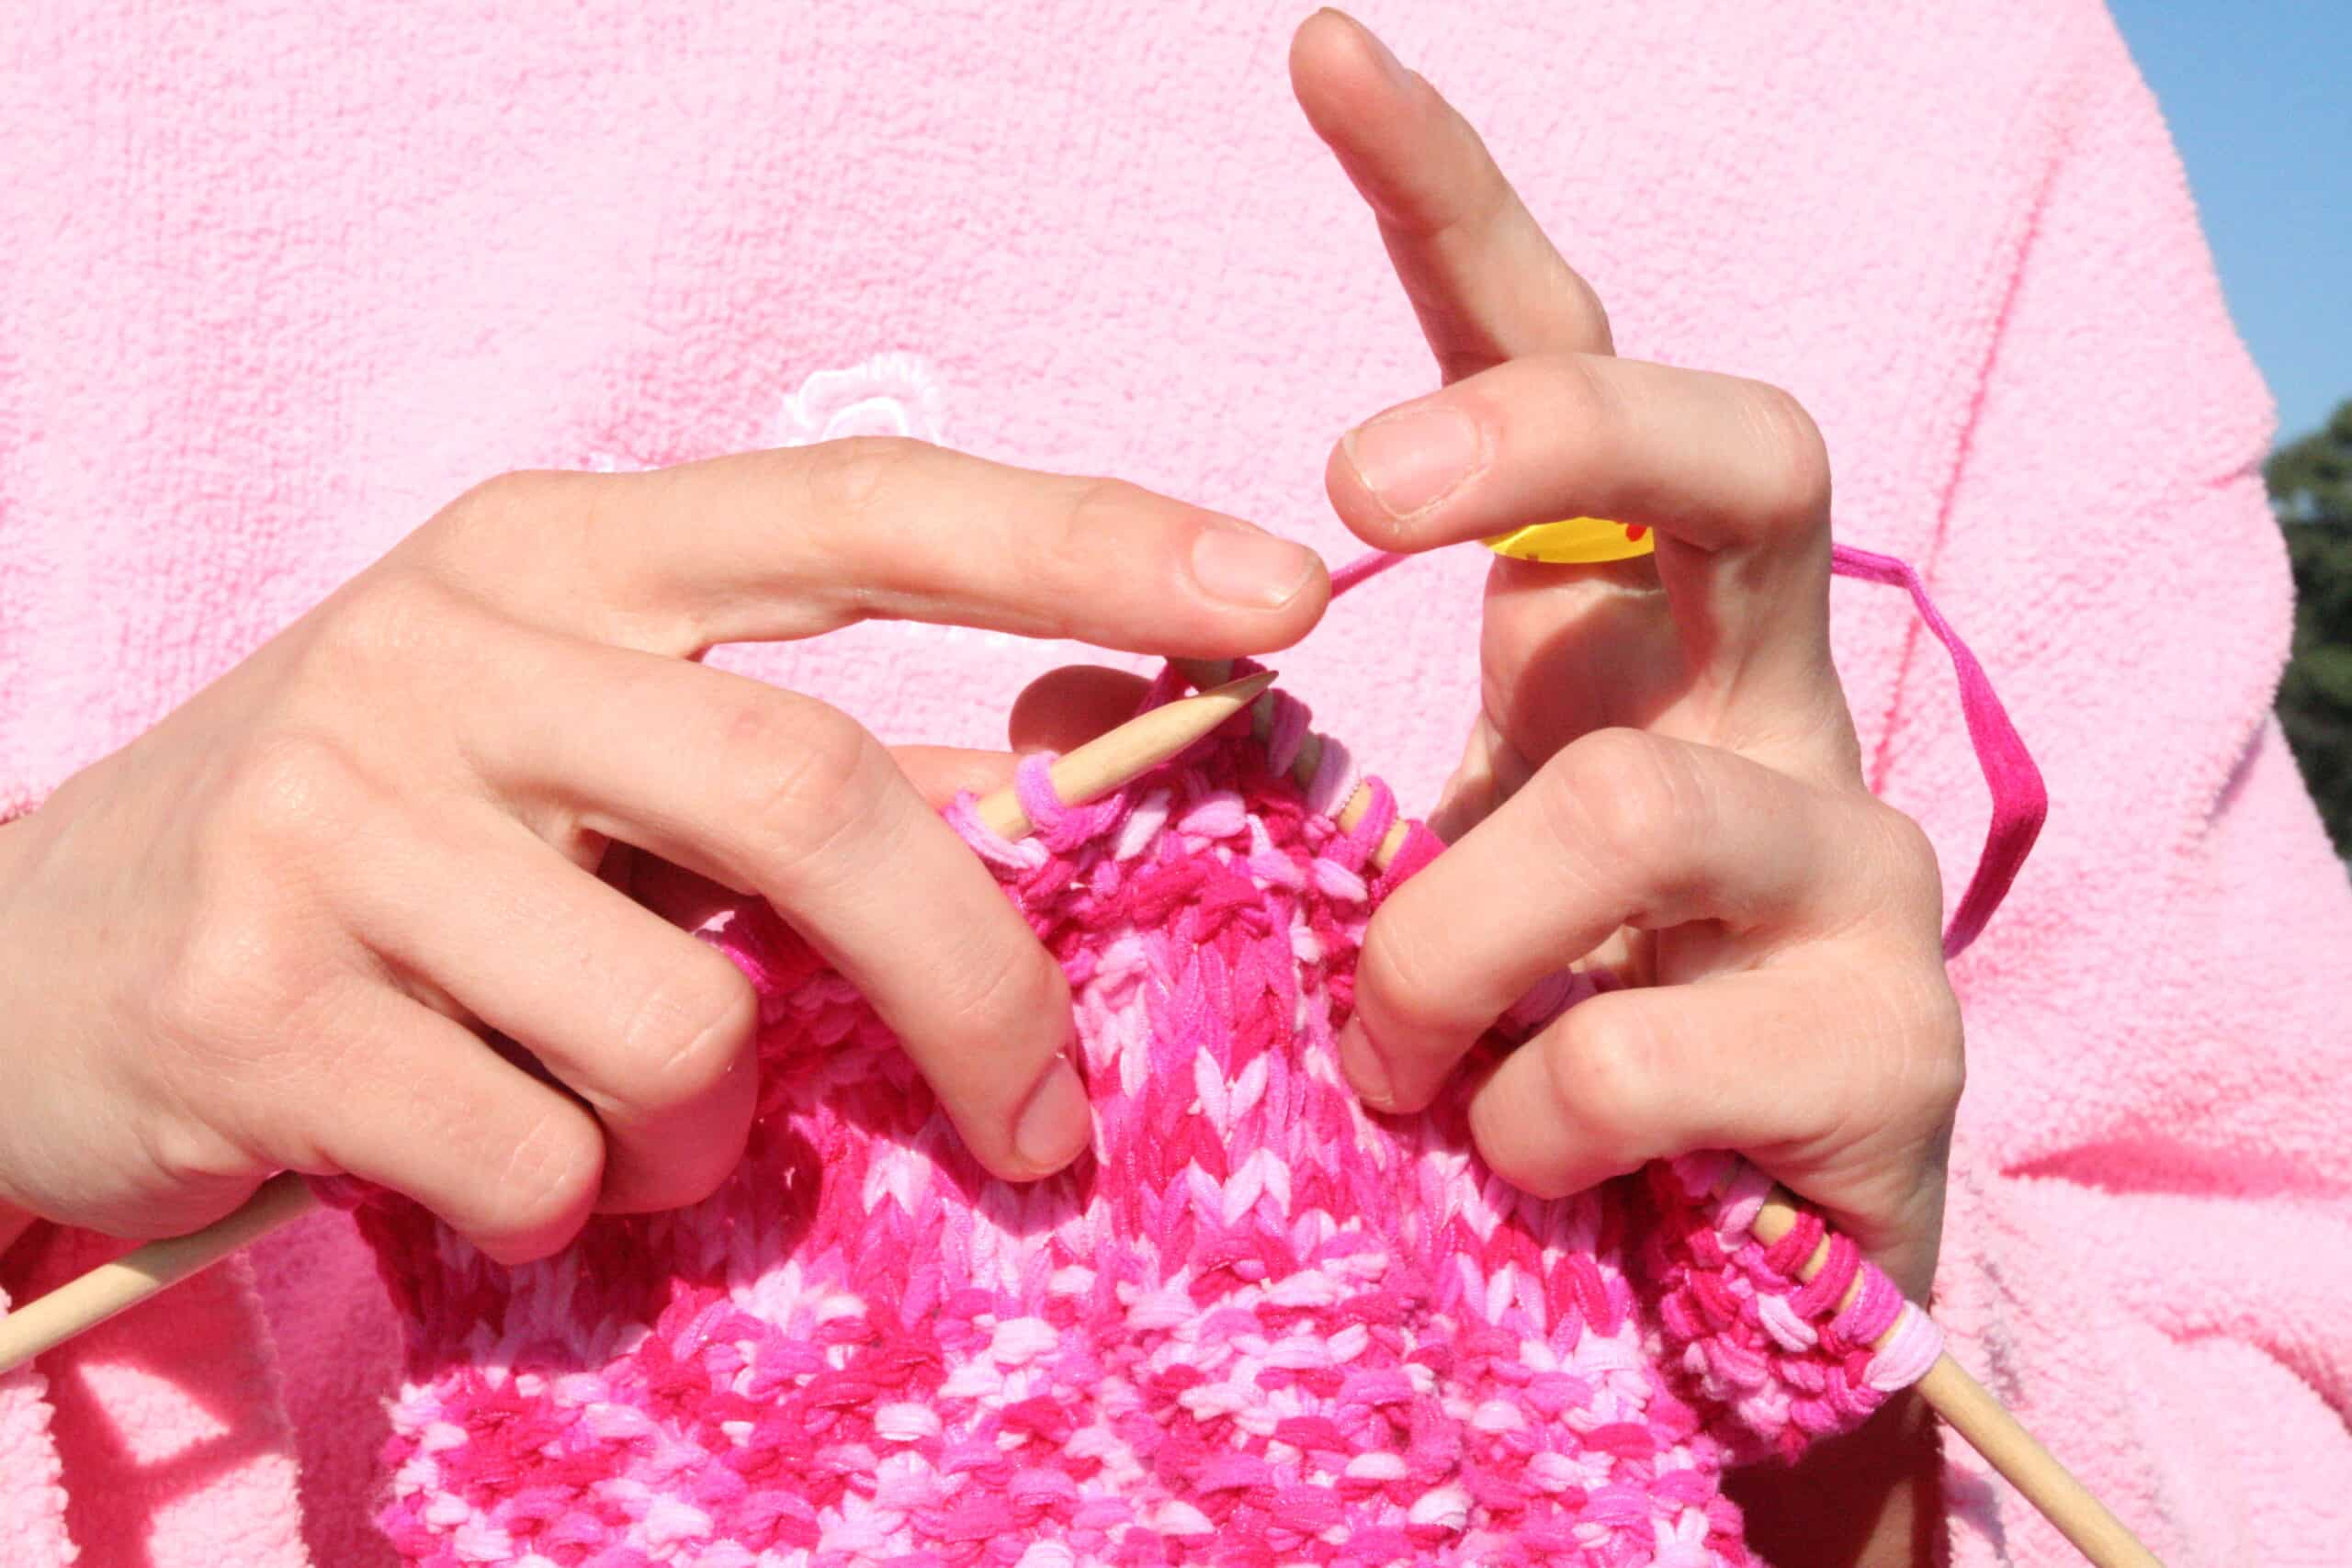 Featured image for Grandma Gets Locked in Public Restroom, Spends 4 Days Knitting [HOAXED]